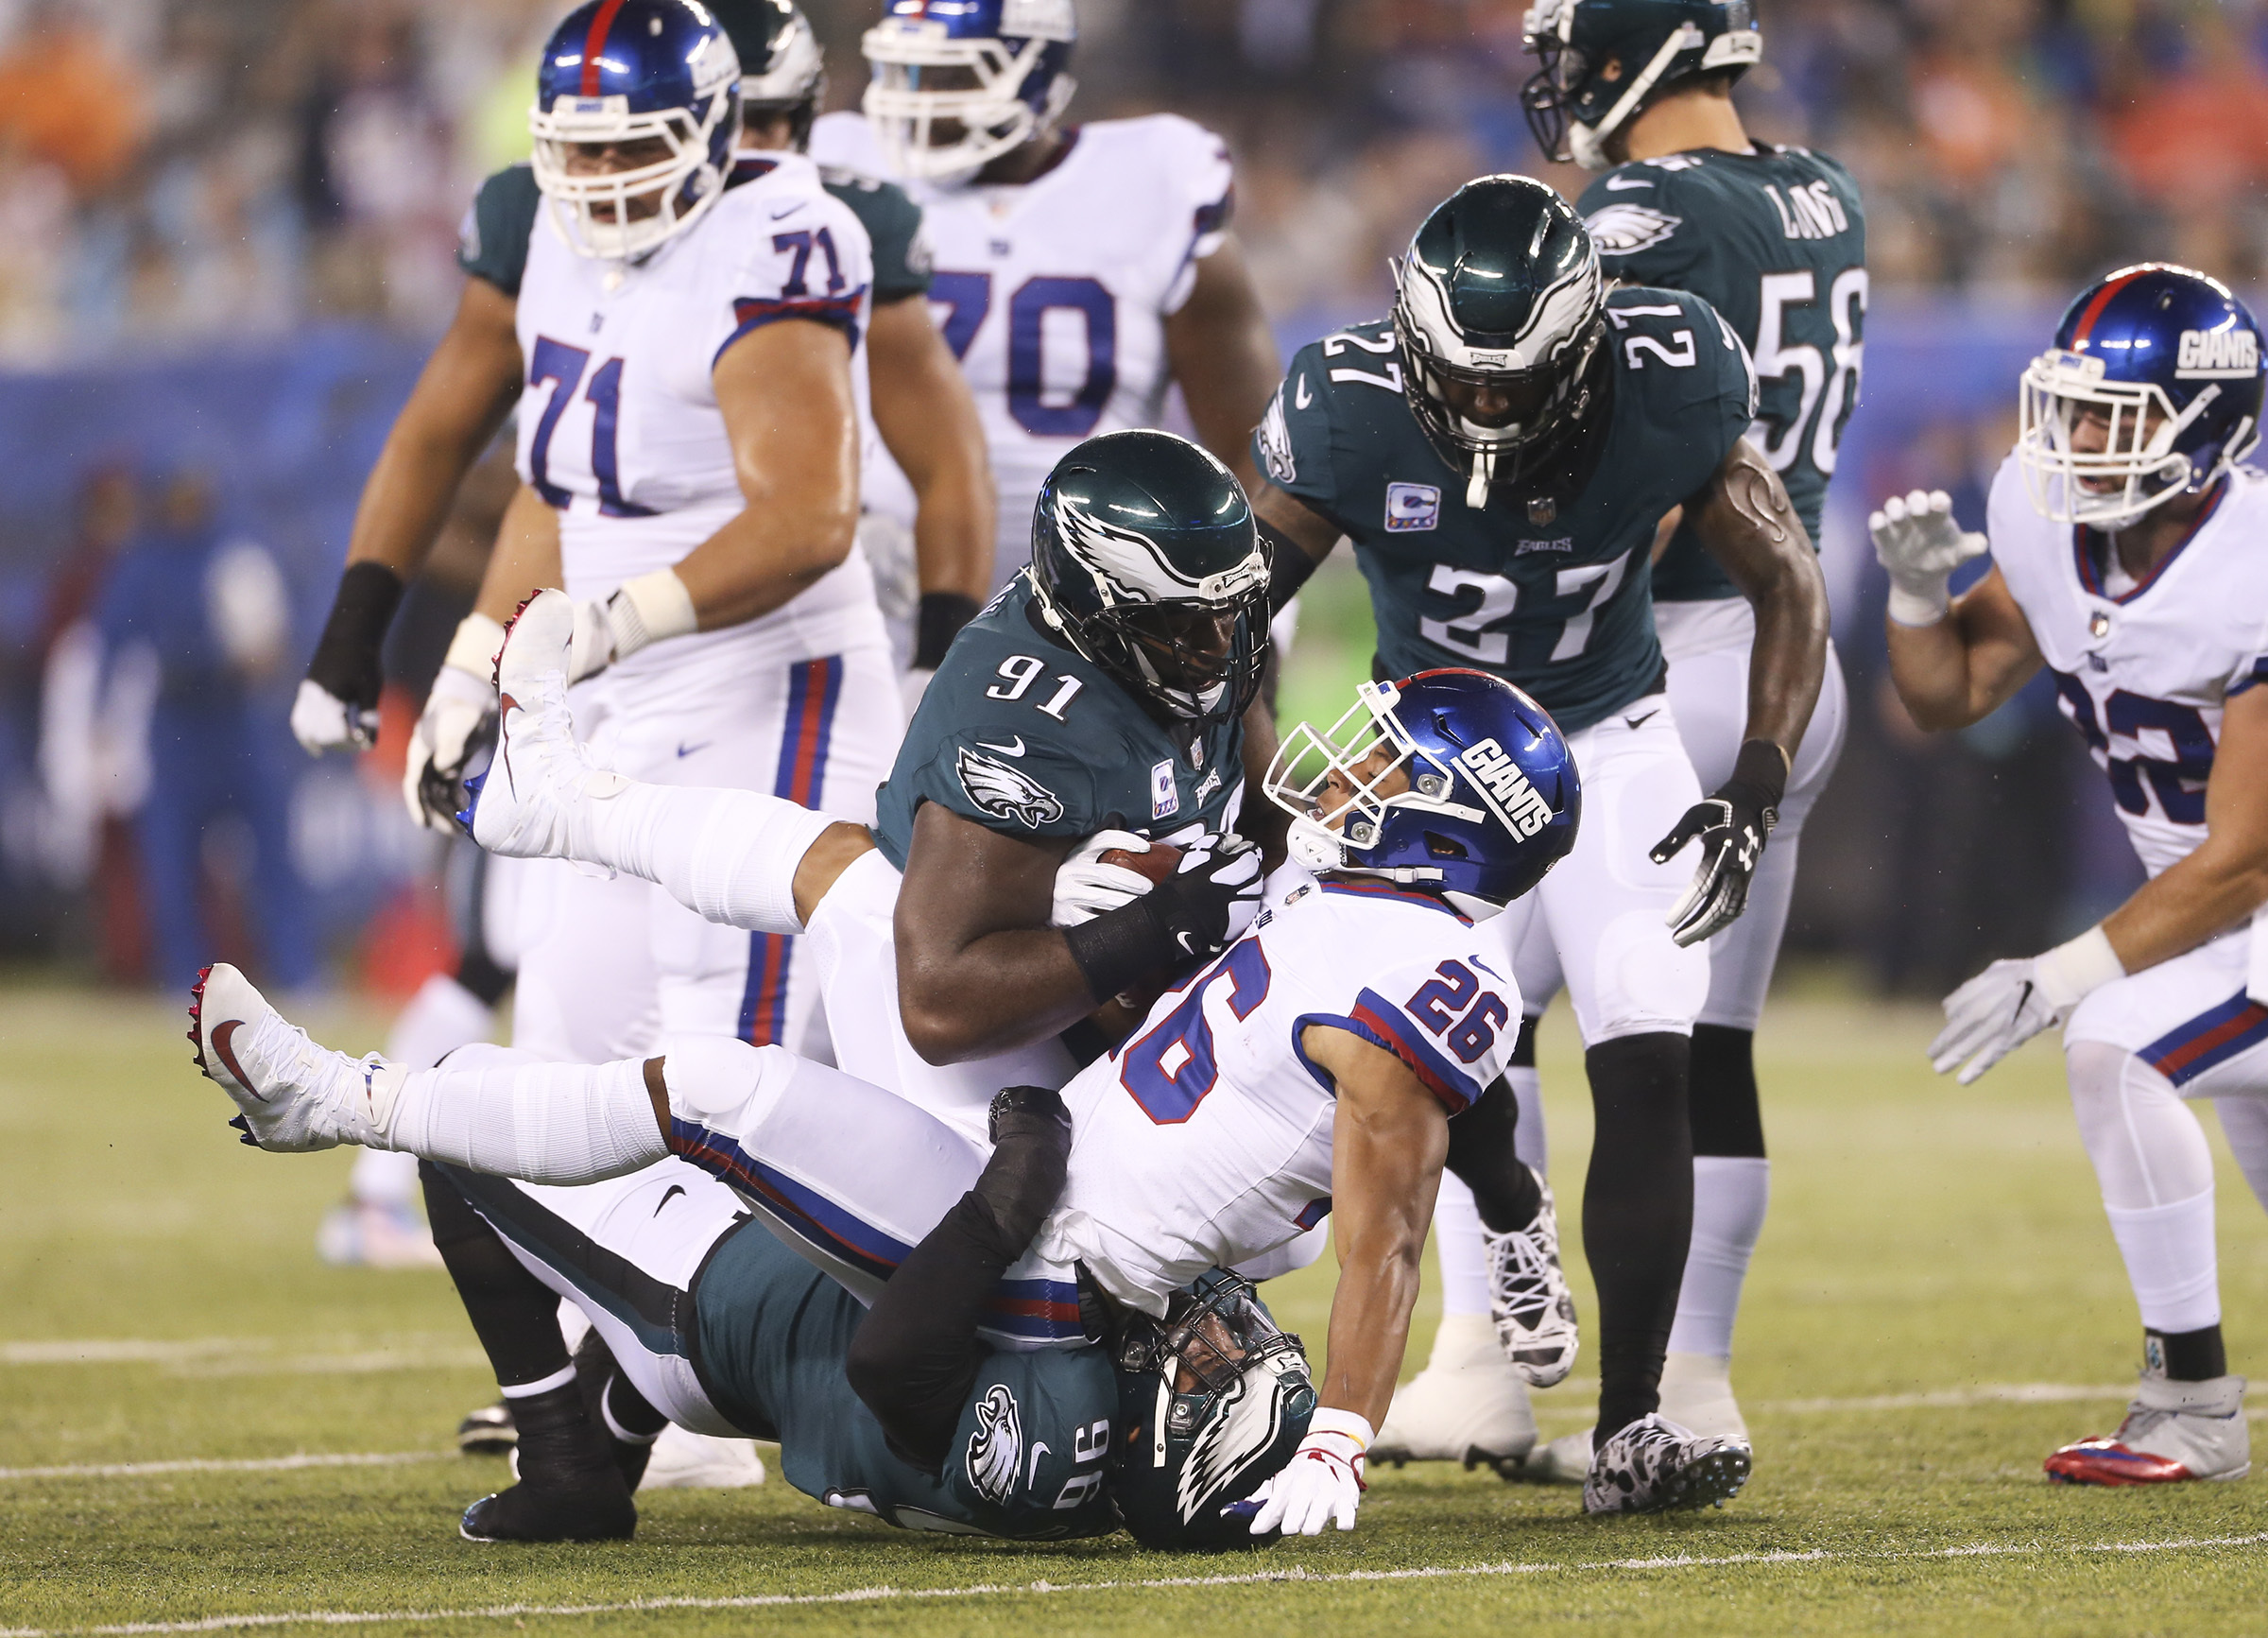 Eagles defensive end Derek Barnett, defensive tackle Fletcher Cox (91) and strong safety Malcolm Jenkins (27) stop Giants running back Saquon Barkley in the first quarter.